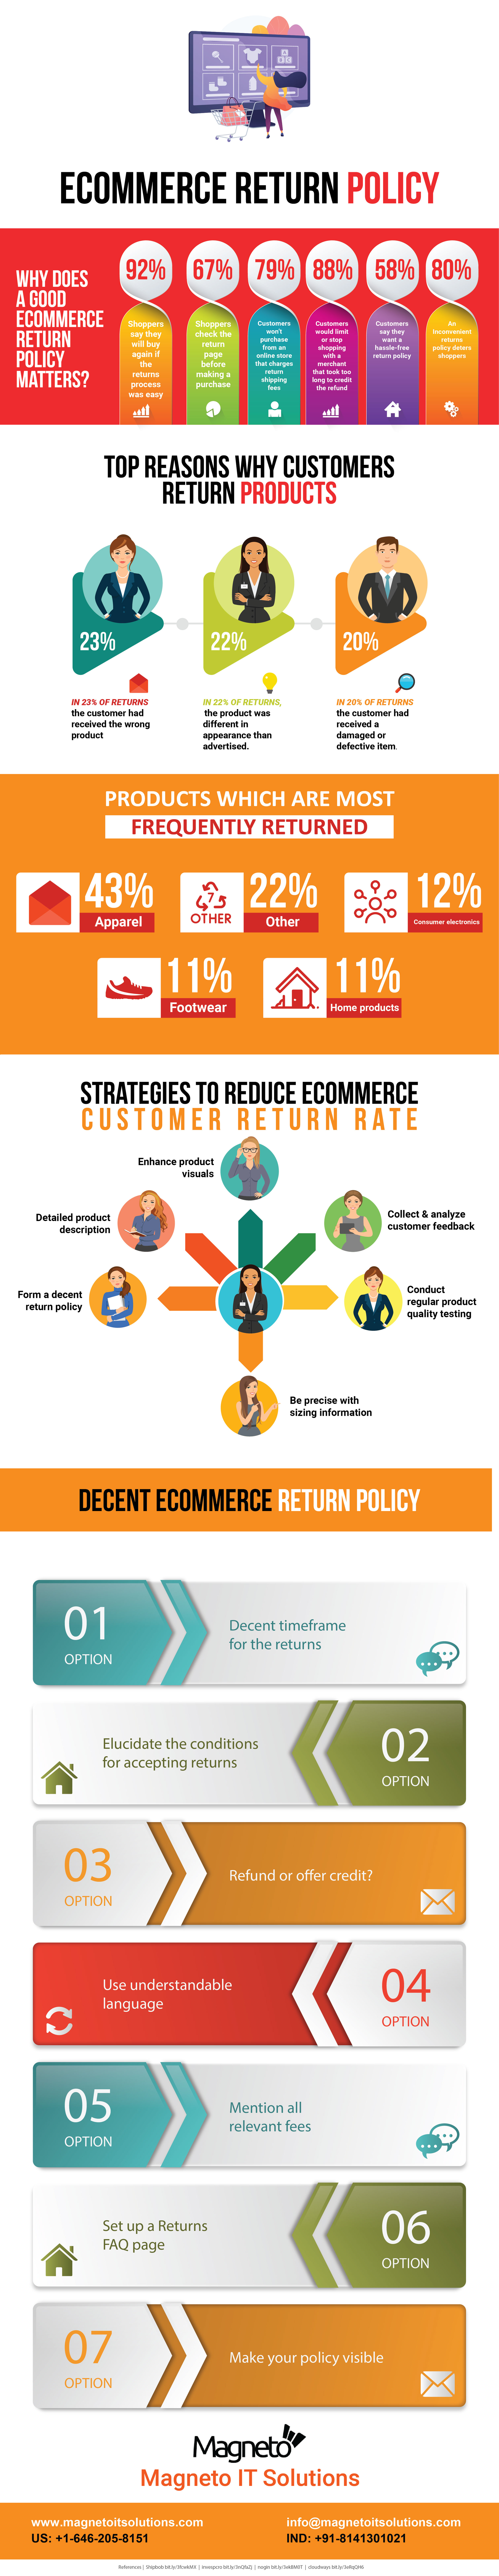 eCommerce Return Policy Infographic